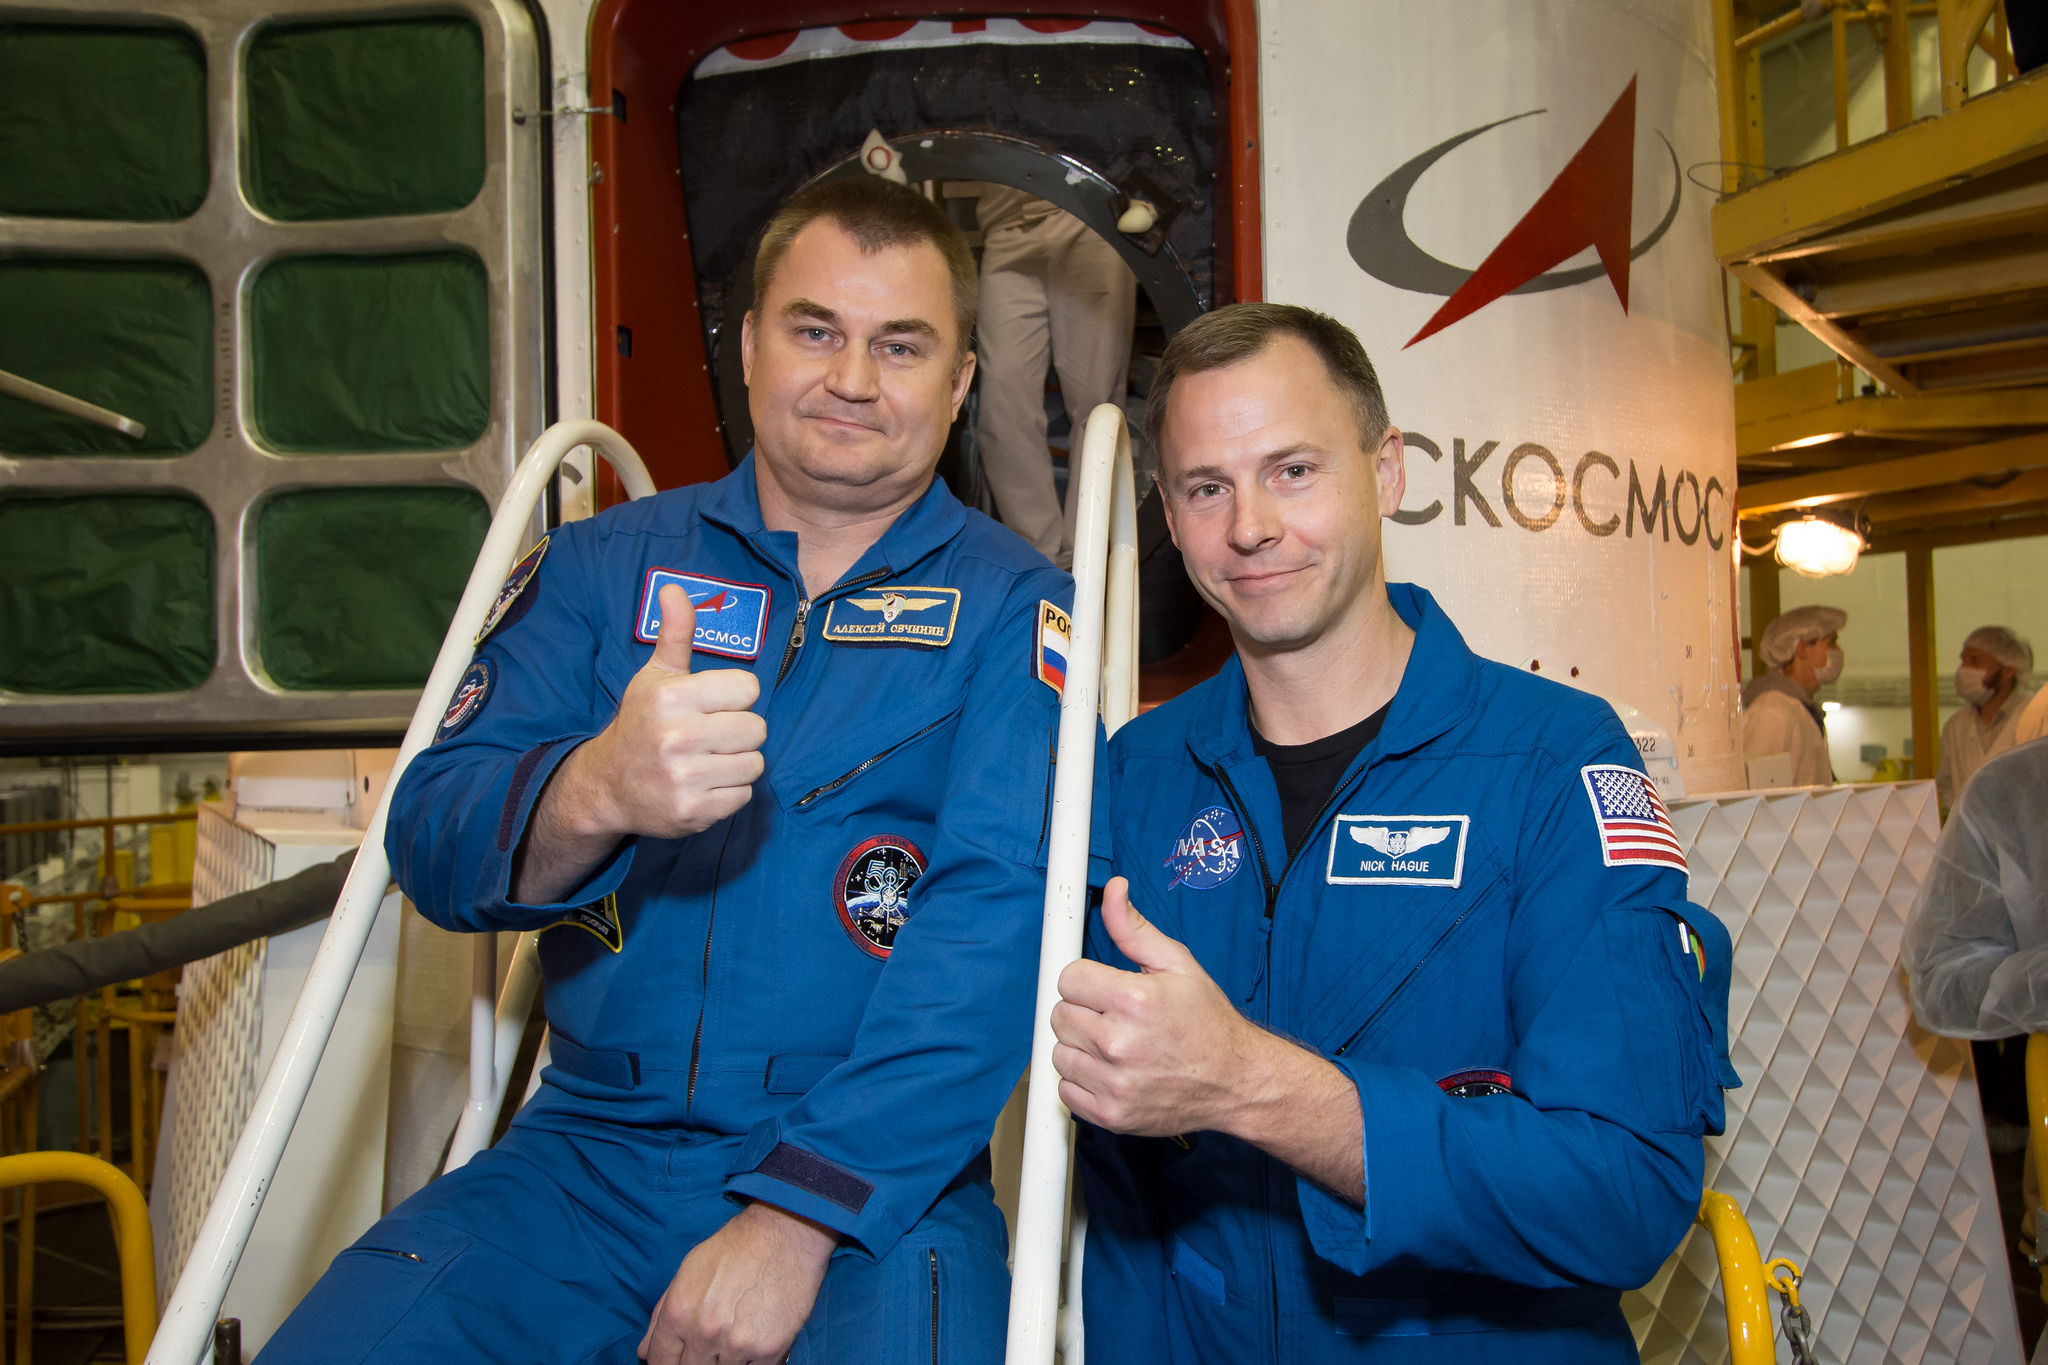 At the Baikonur Cosmodrome in Kazakhstan, Expedition 57 crewmembers Alexey Ovchinin of Roscosmos (left) and Nick Hague of NASA (right) pose for pictures Oct. 6 in front of the Soyuz MS-10 spacecraft. (Credit: NASA/Victor Zelentsov)